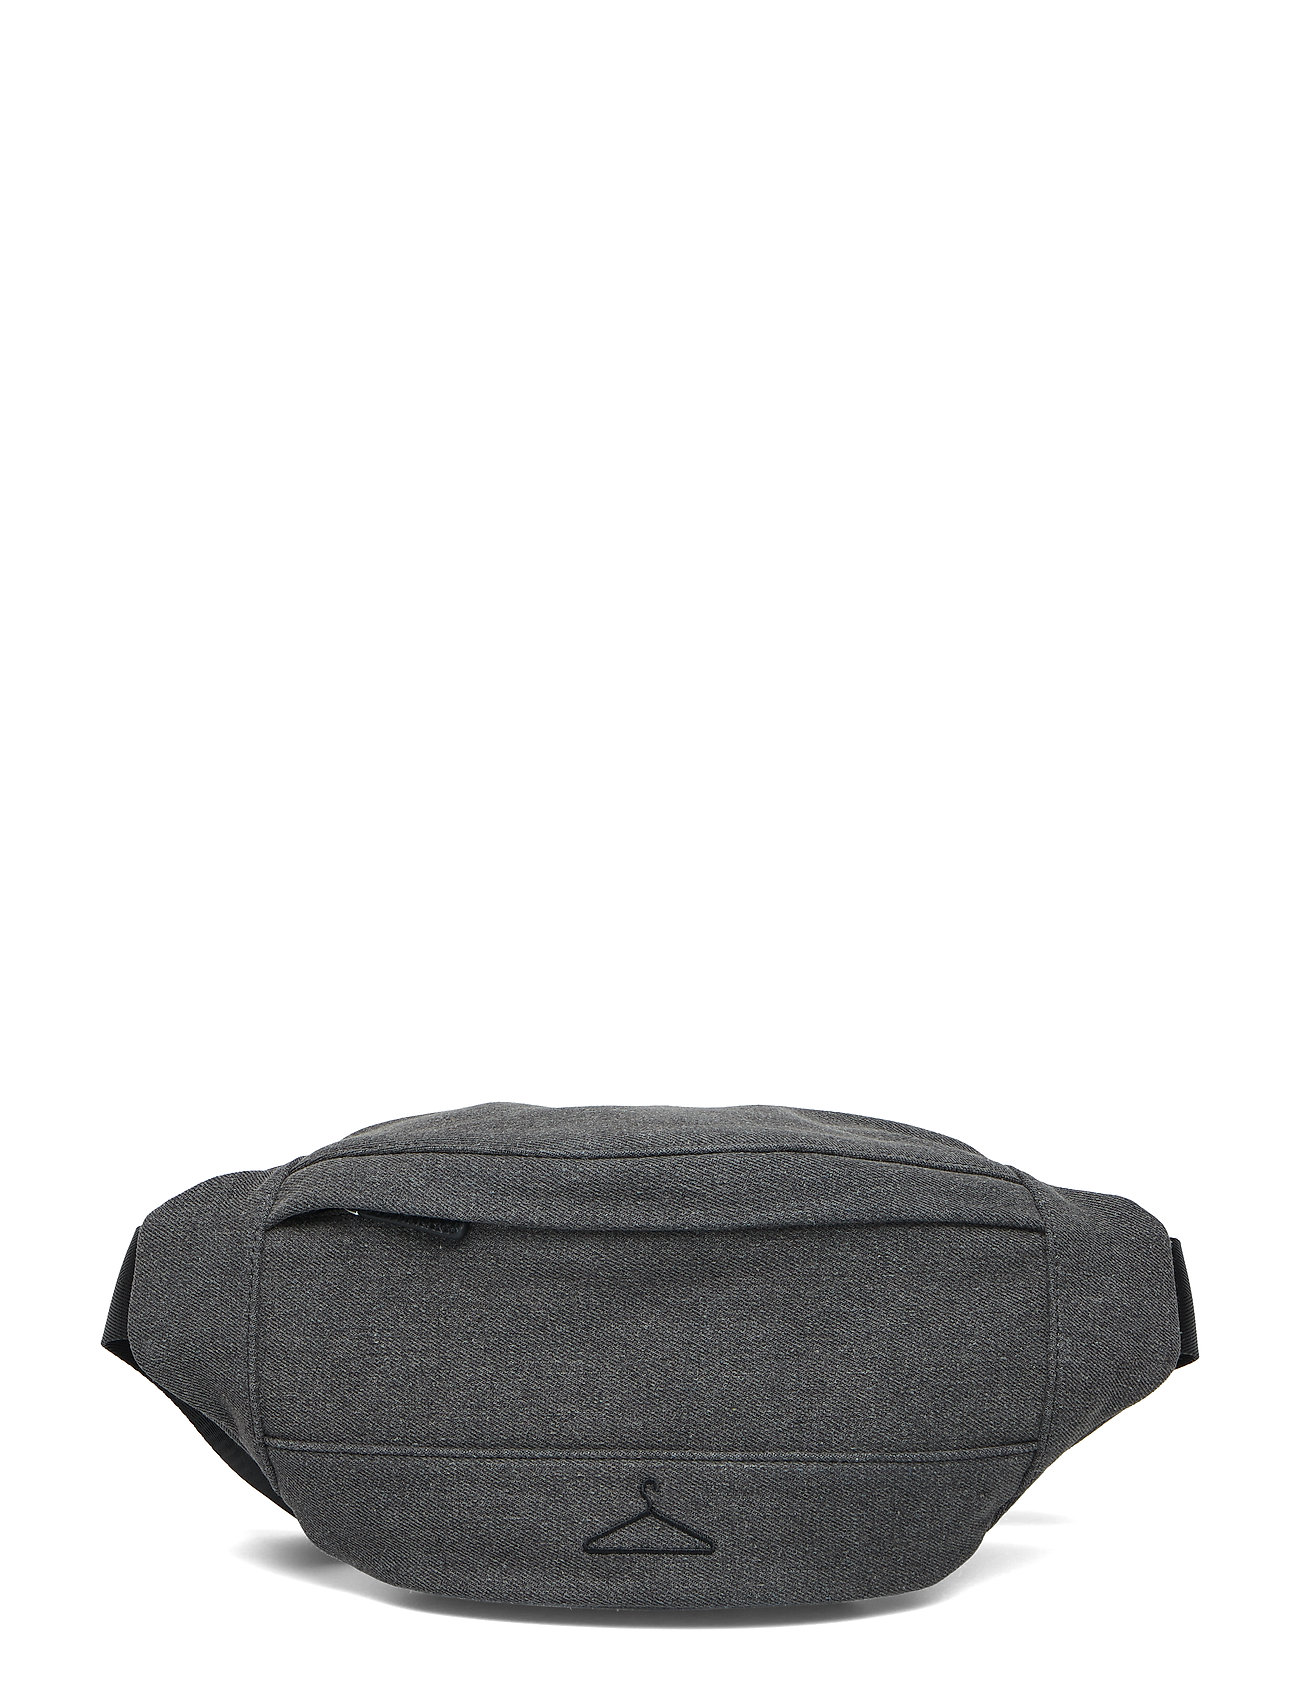 Image of Willow Fannypack Bum Bag Taske Grå HOLZWEILER (3455953479)